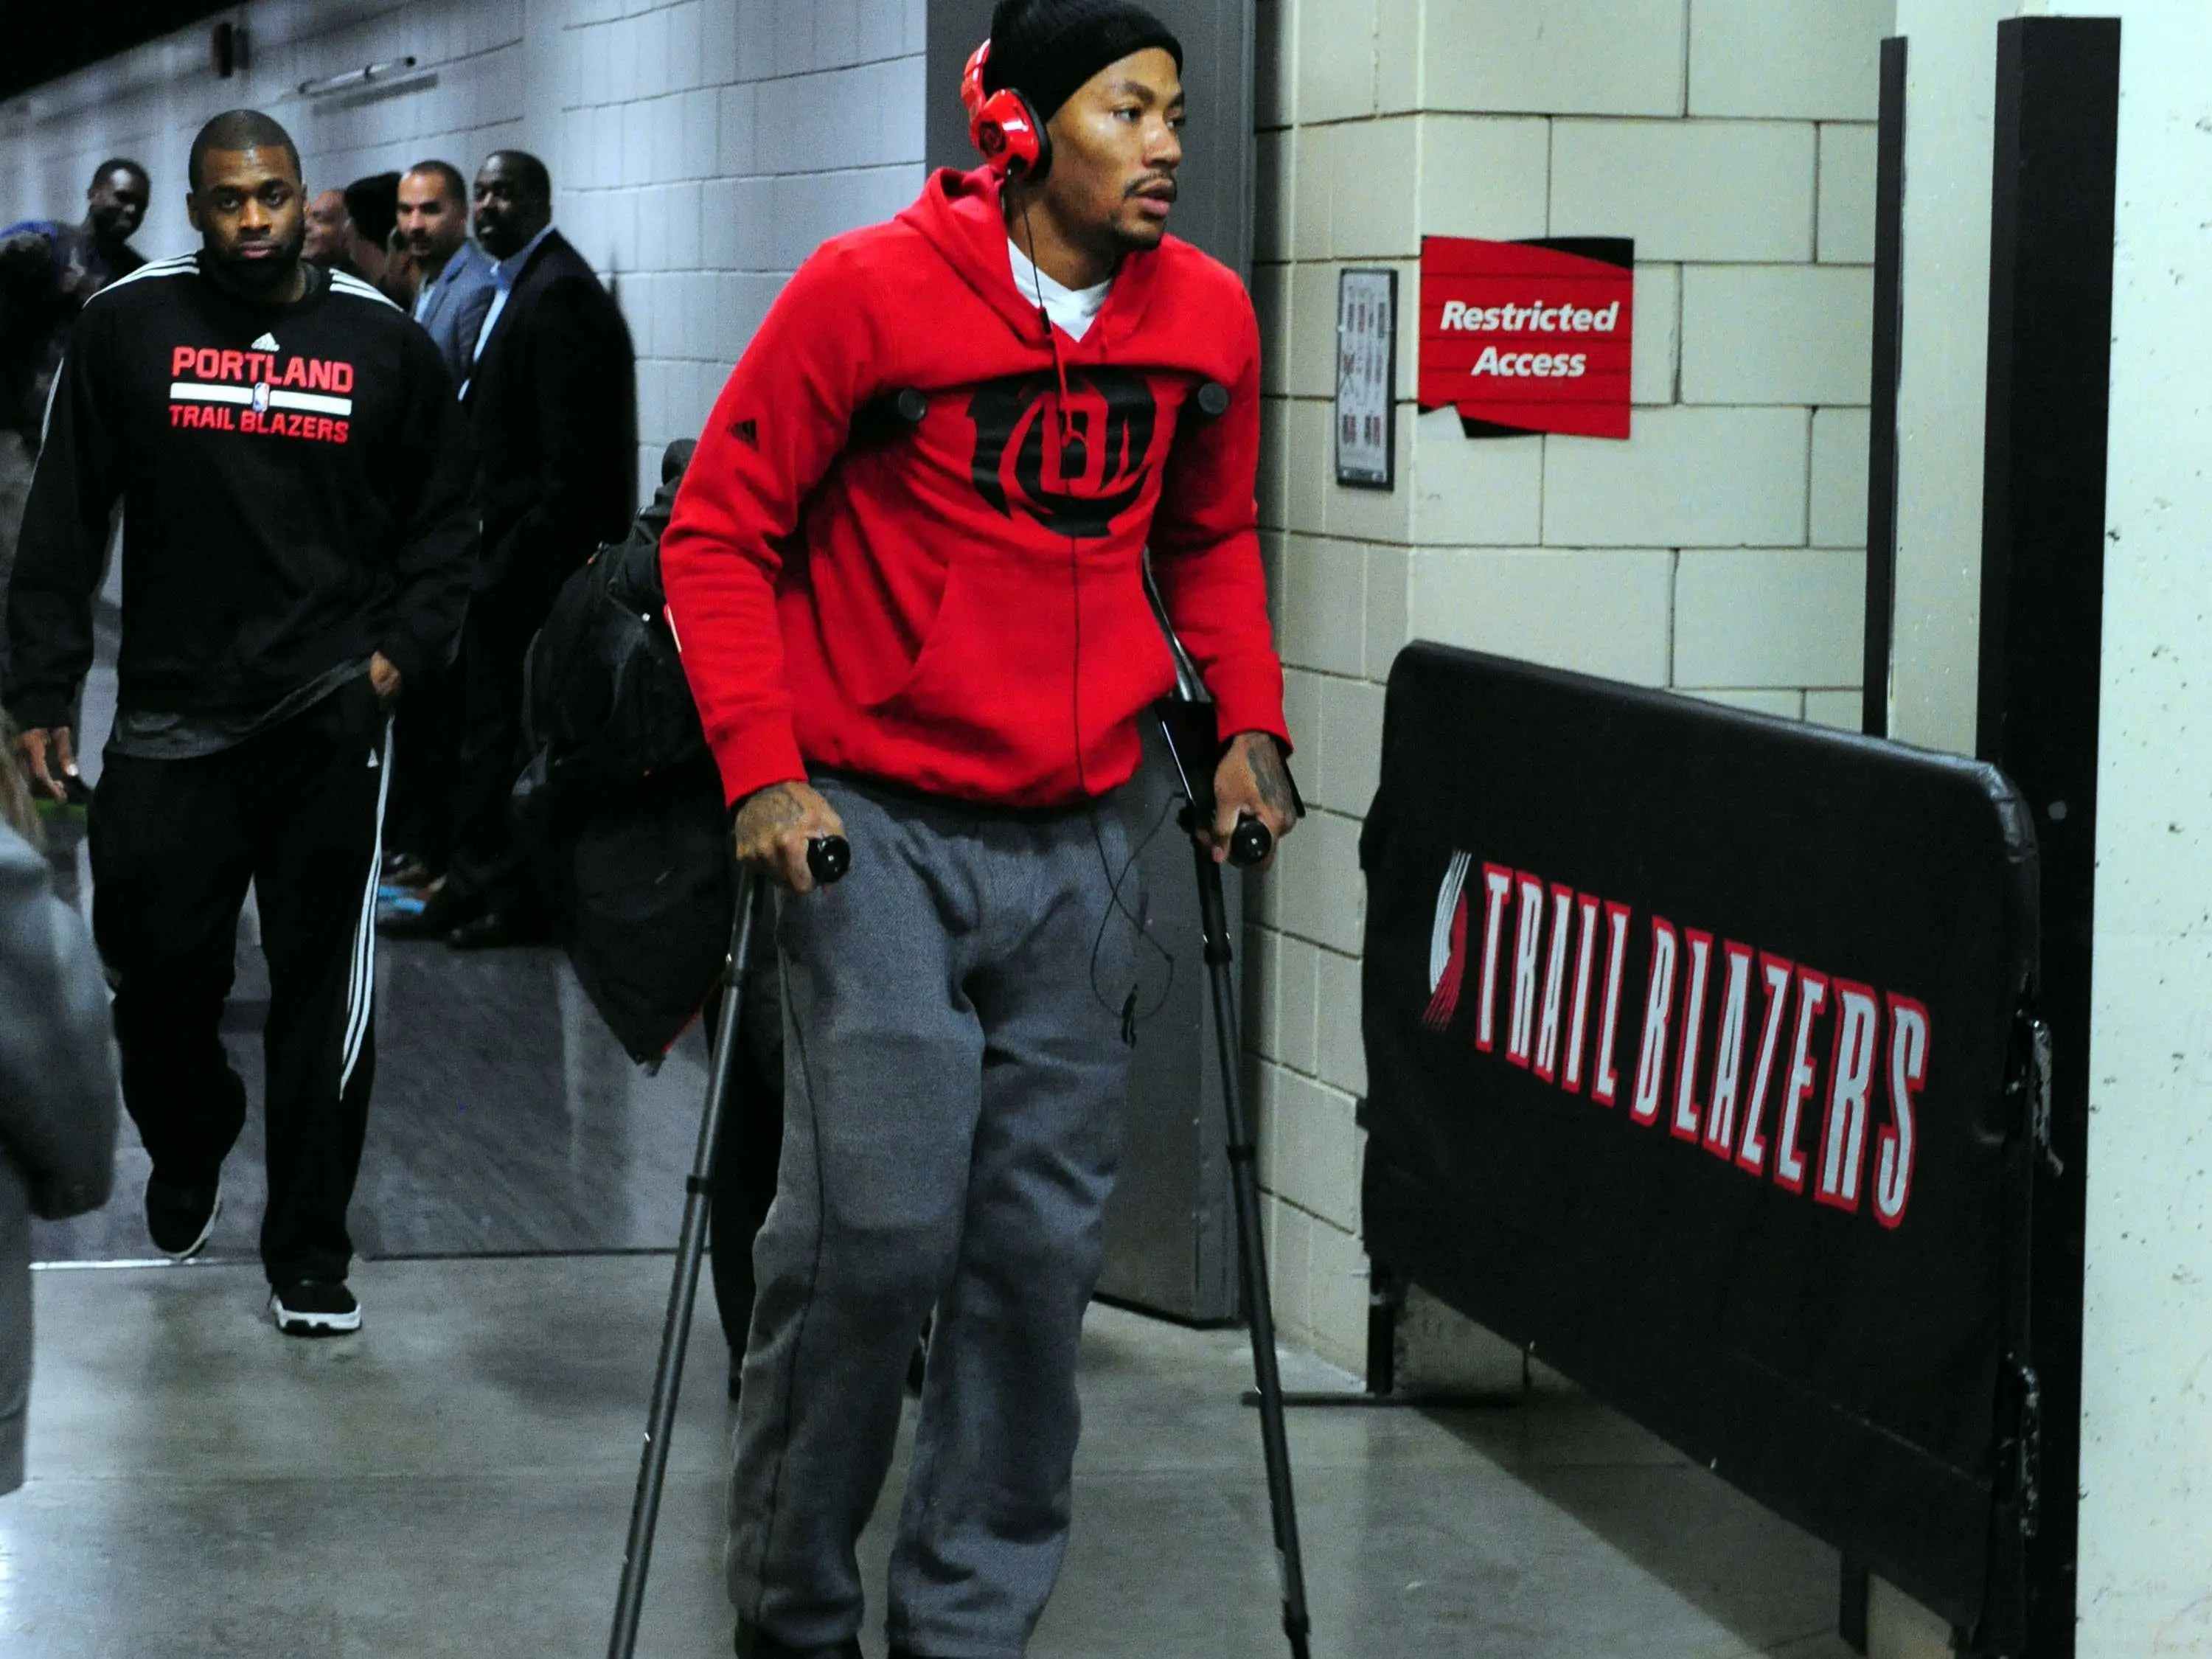 Derrick Rose on crutches after injuring the meniscus in his left knee - 11/23/13 - Bulls vs. Trailblazers